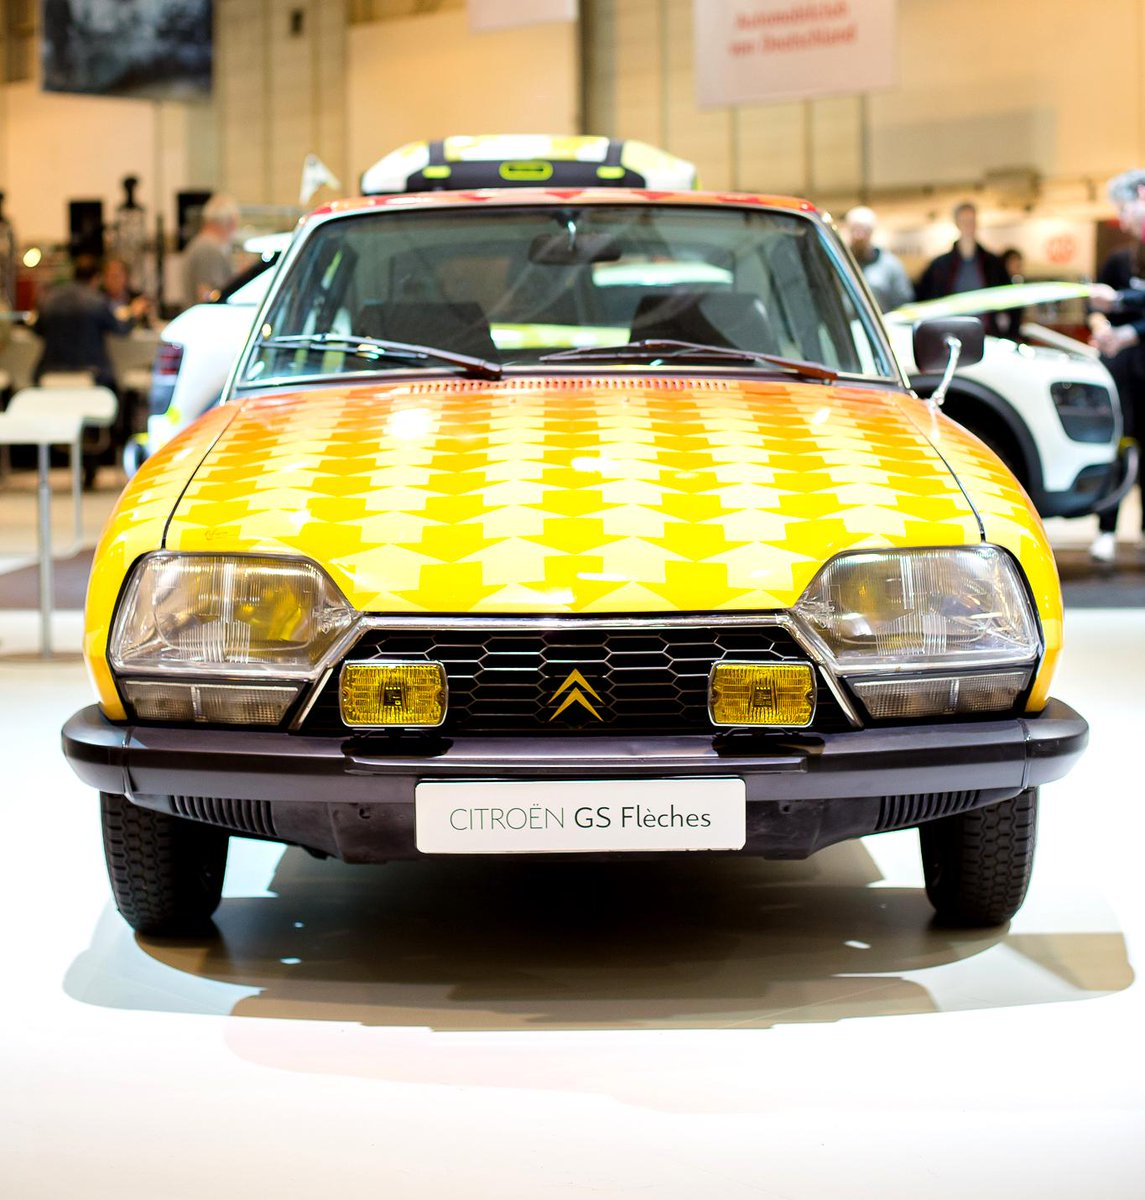 [SALON]  Techno Classica Essen CDC5Q05WIAA5nNX